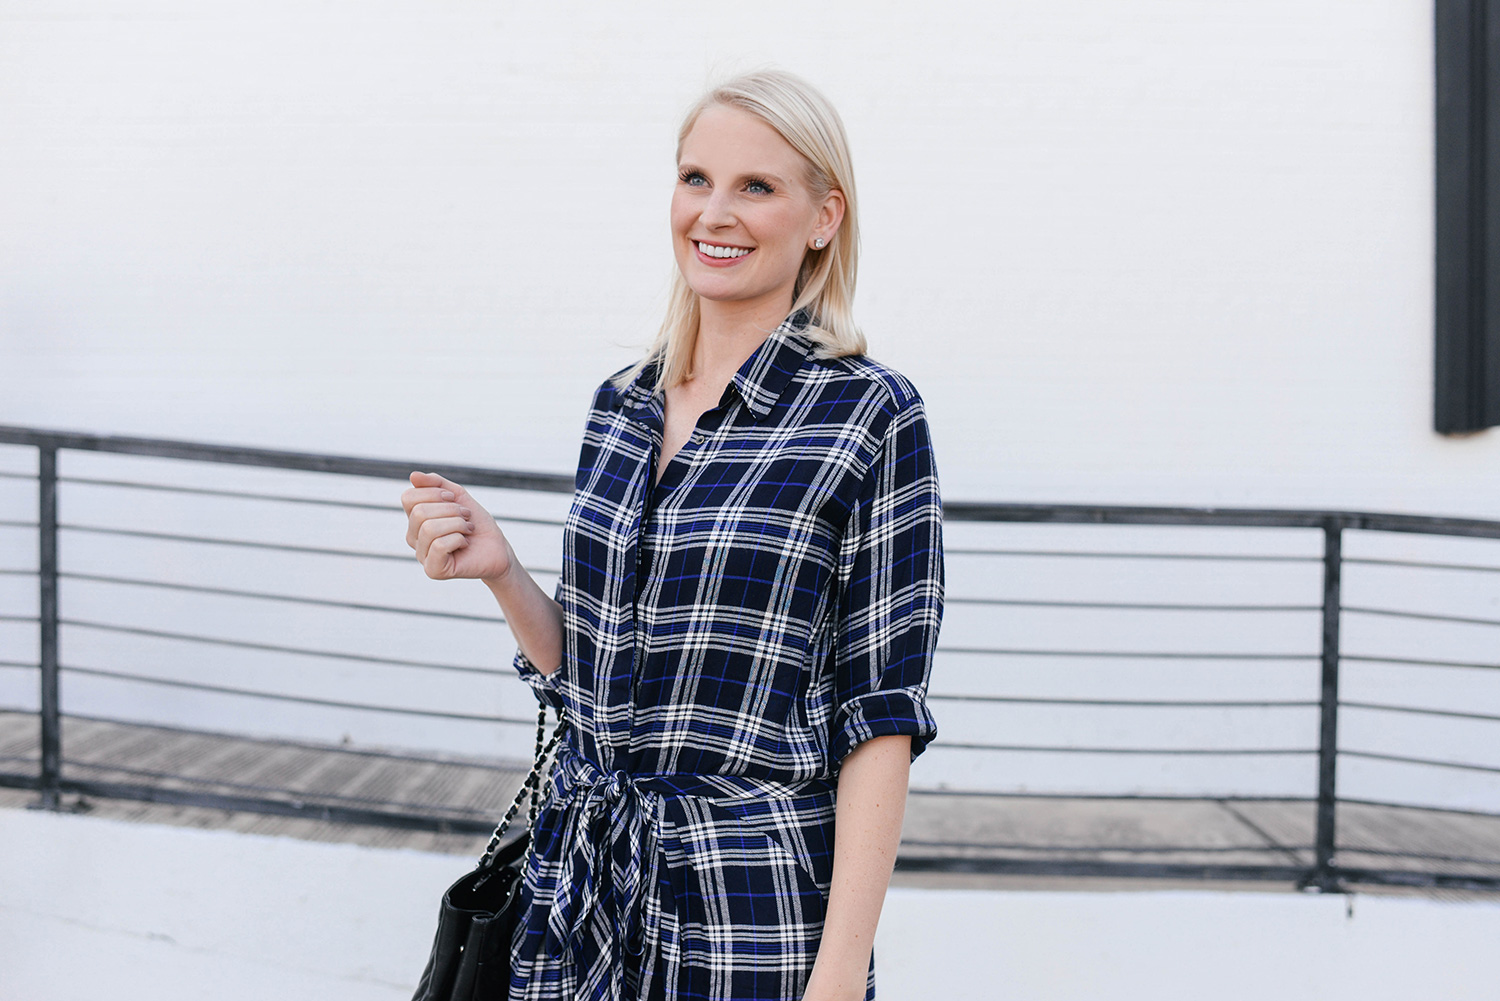 Heartloom Kasey Dress in Plaid | Merritt Beck